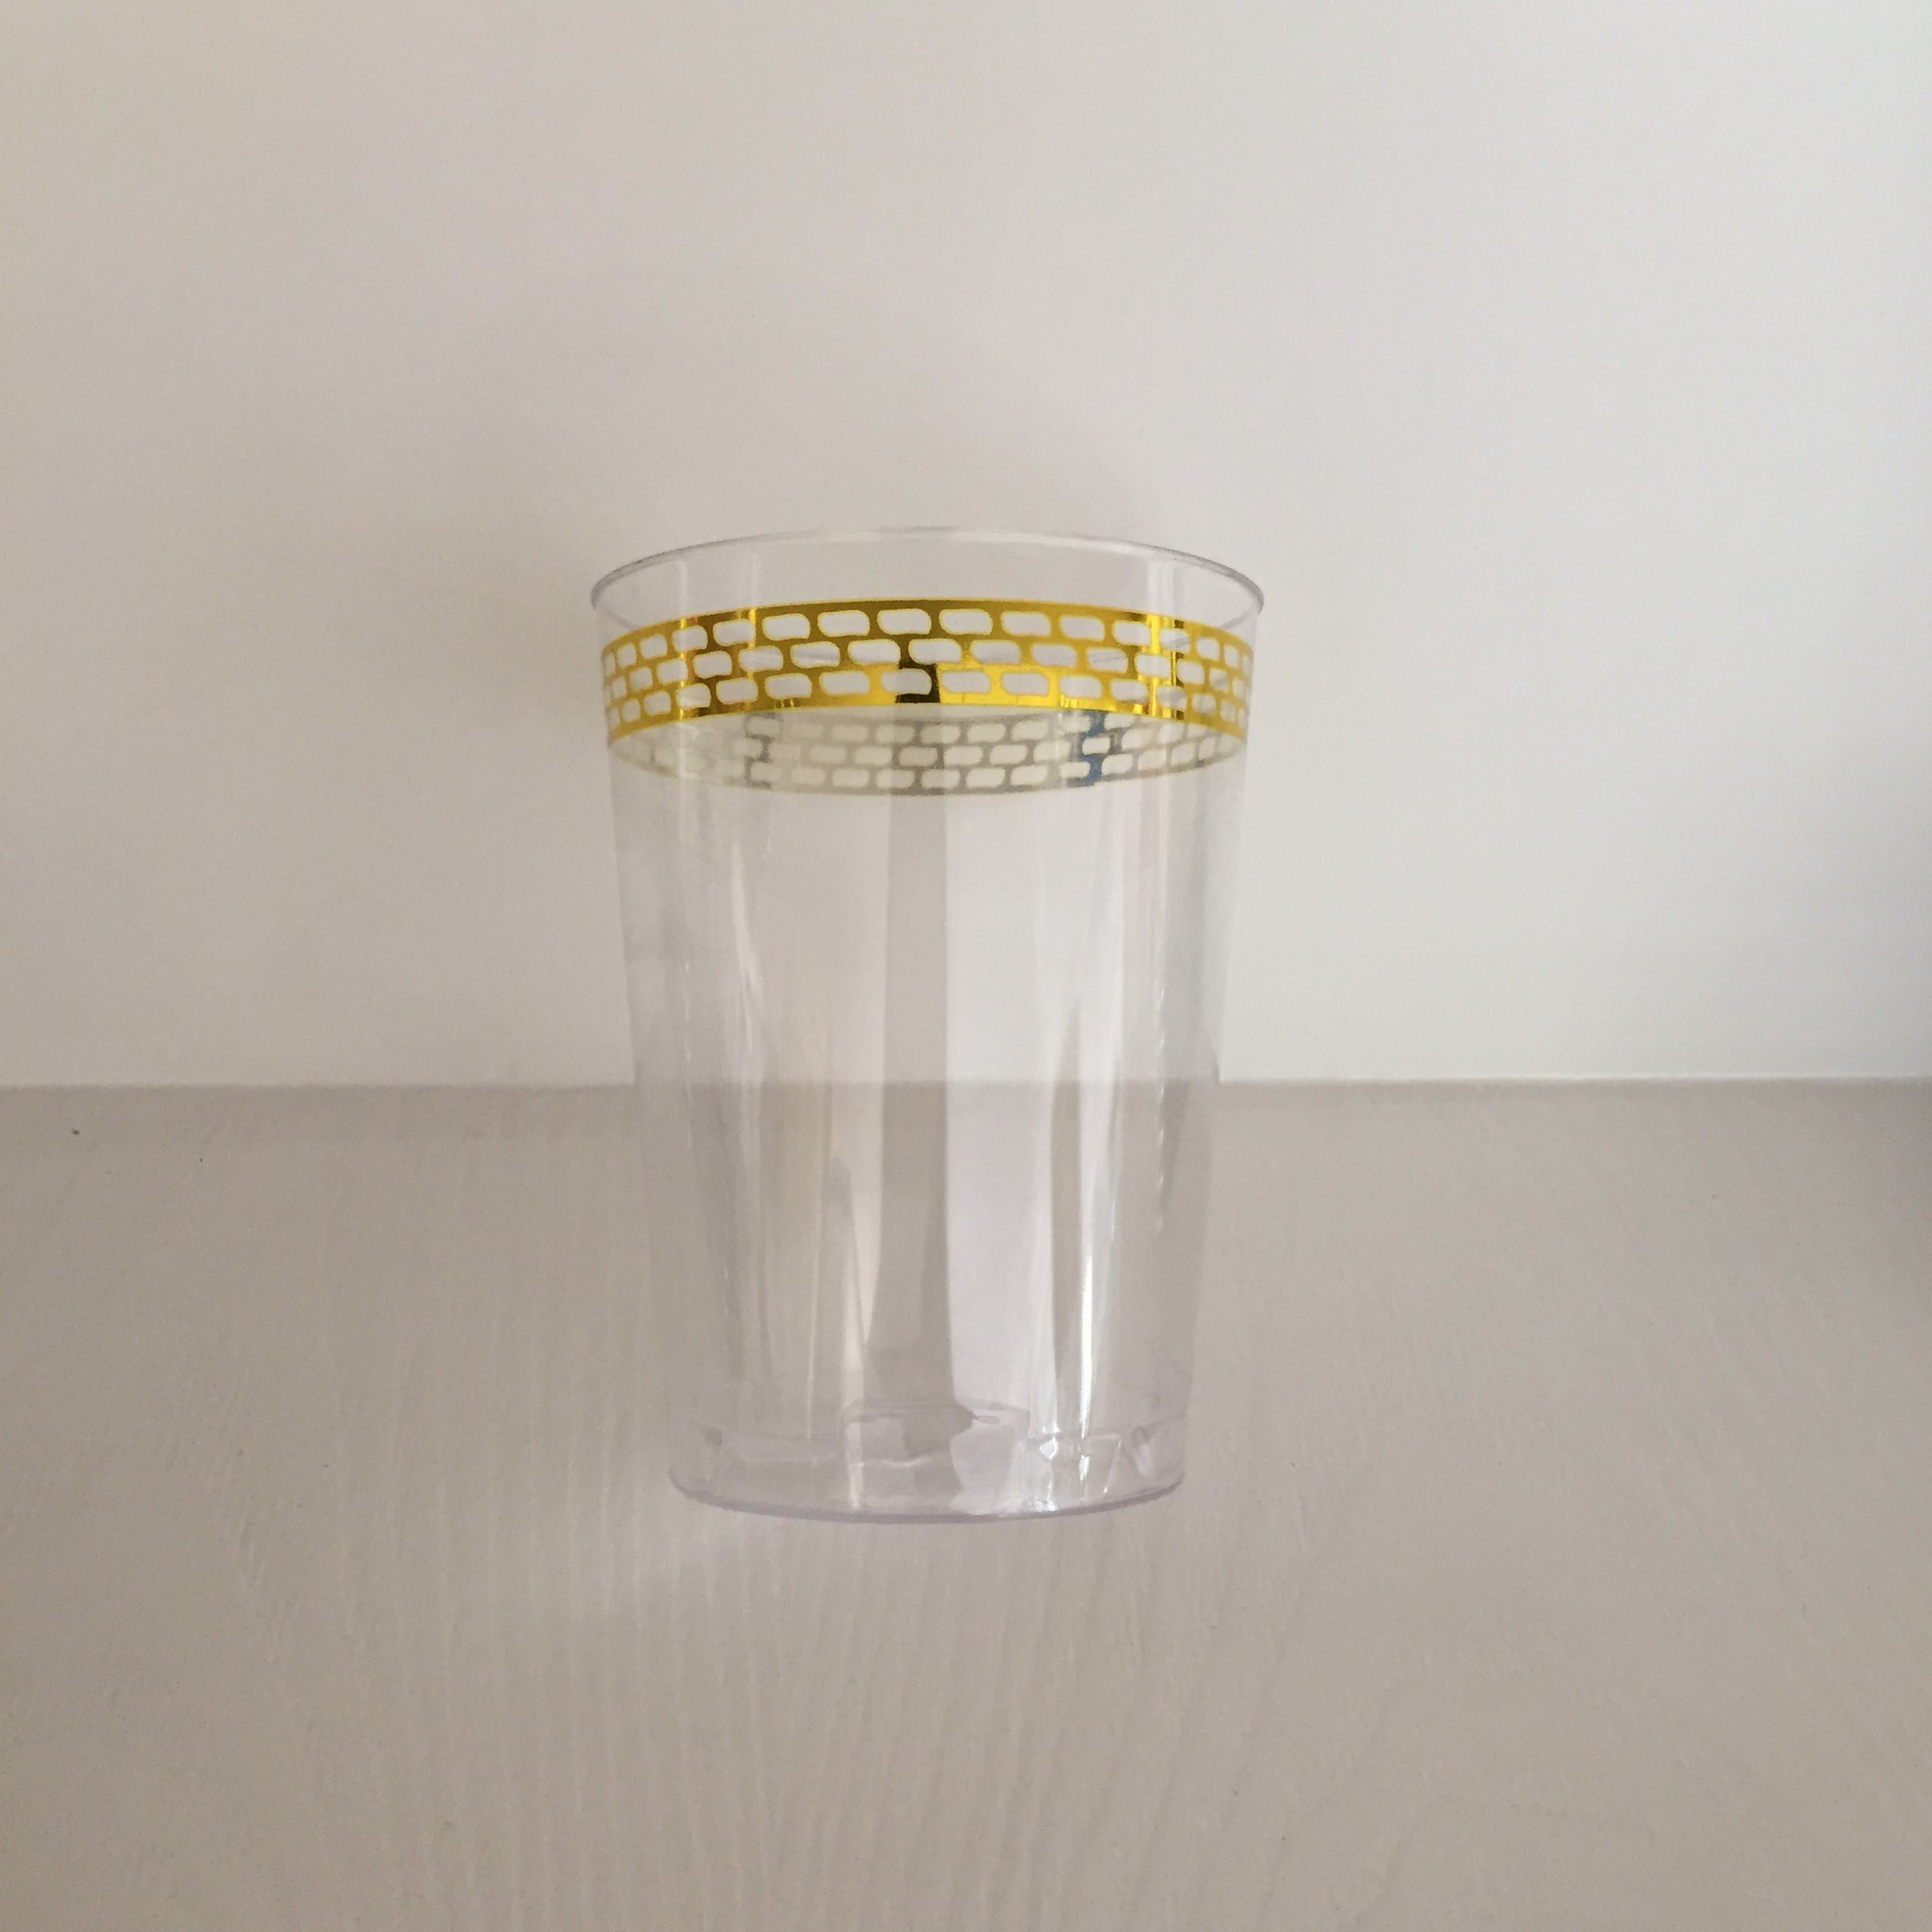 Plastic Cup, Glass, Mug, Tableware, PS, GB-01, Disposable, Hot, Cup, Printing, Gold